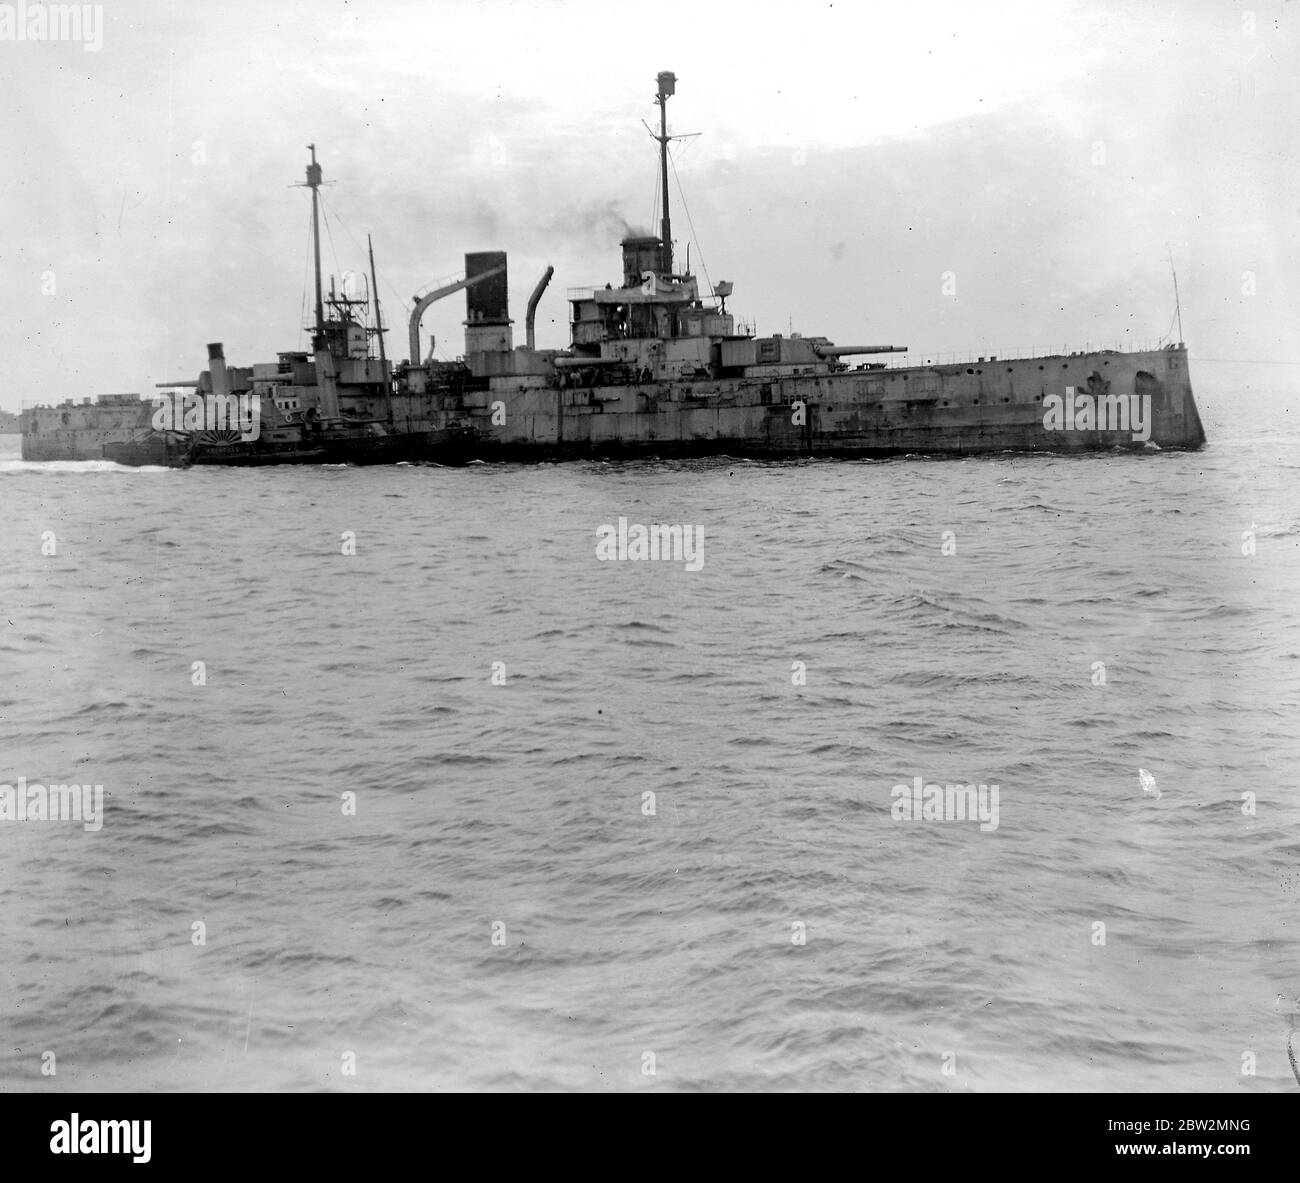 Surrender of German Warships in Firth of Forth. One of the surrendered warships. 14th May 1920 Stock Photo